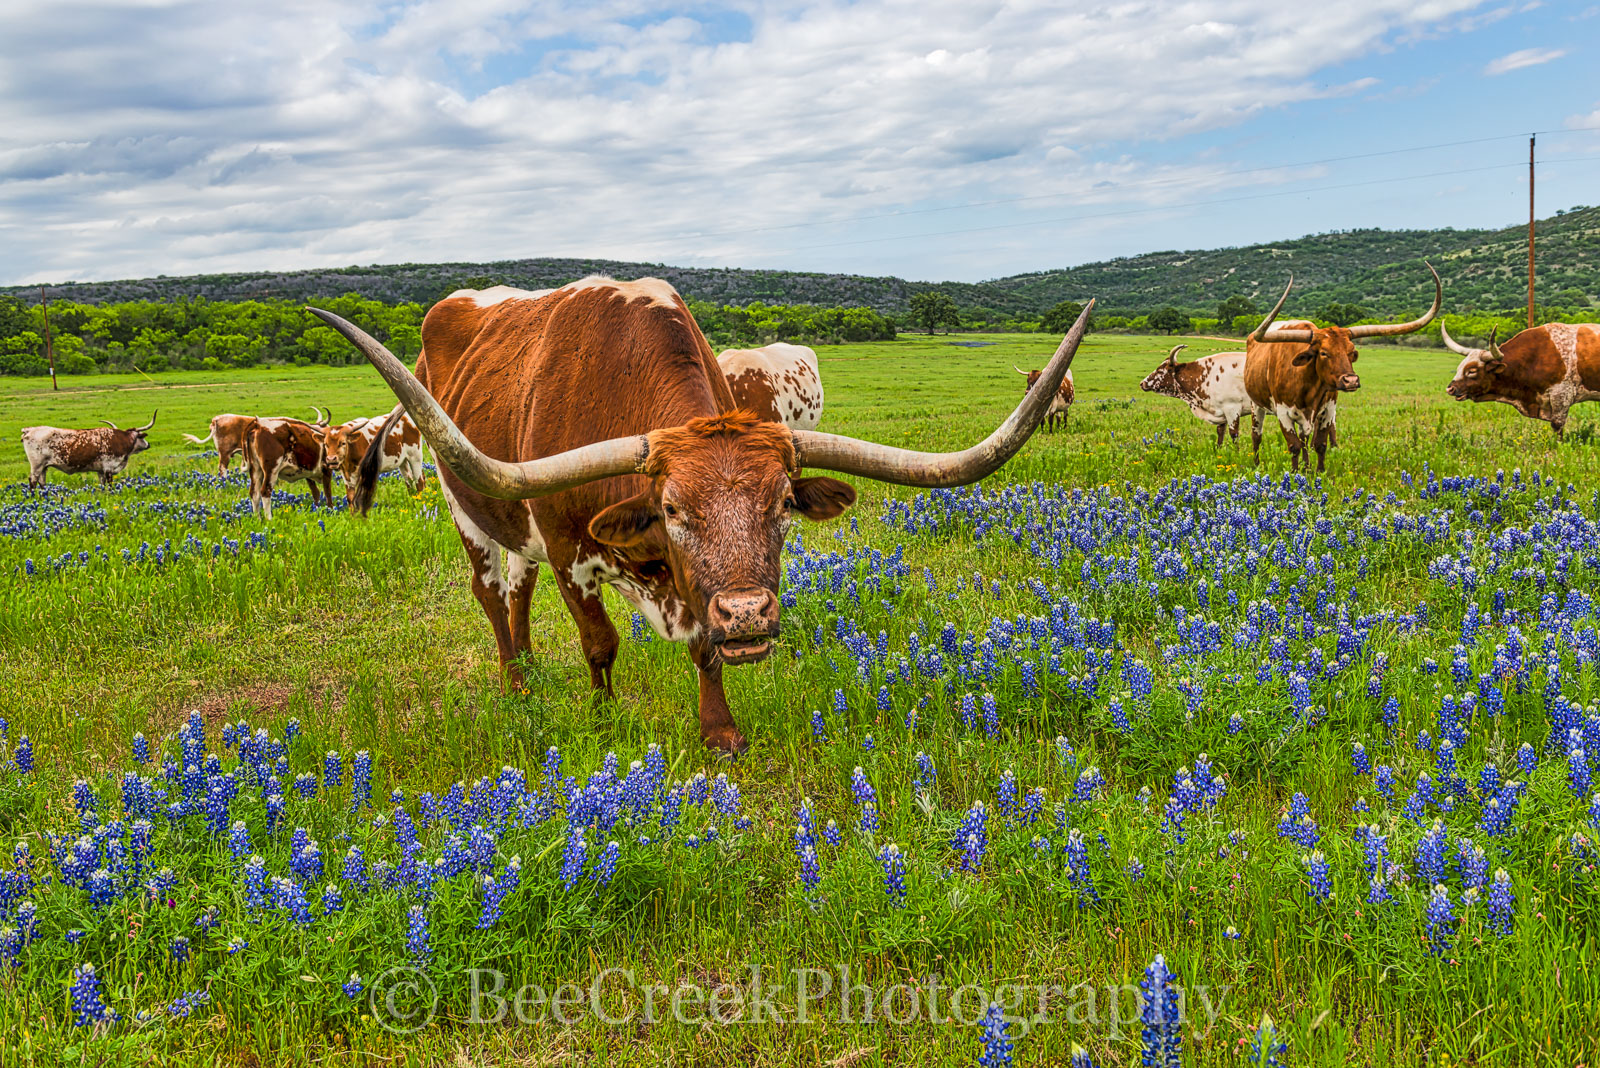 Herd of Longhorns in Bluebonnets - This friendly longhorn who happen to be standing in this field of bluebonnets posed for his...